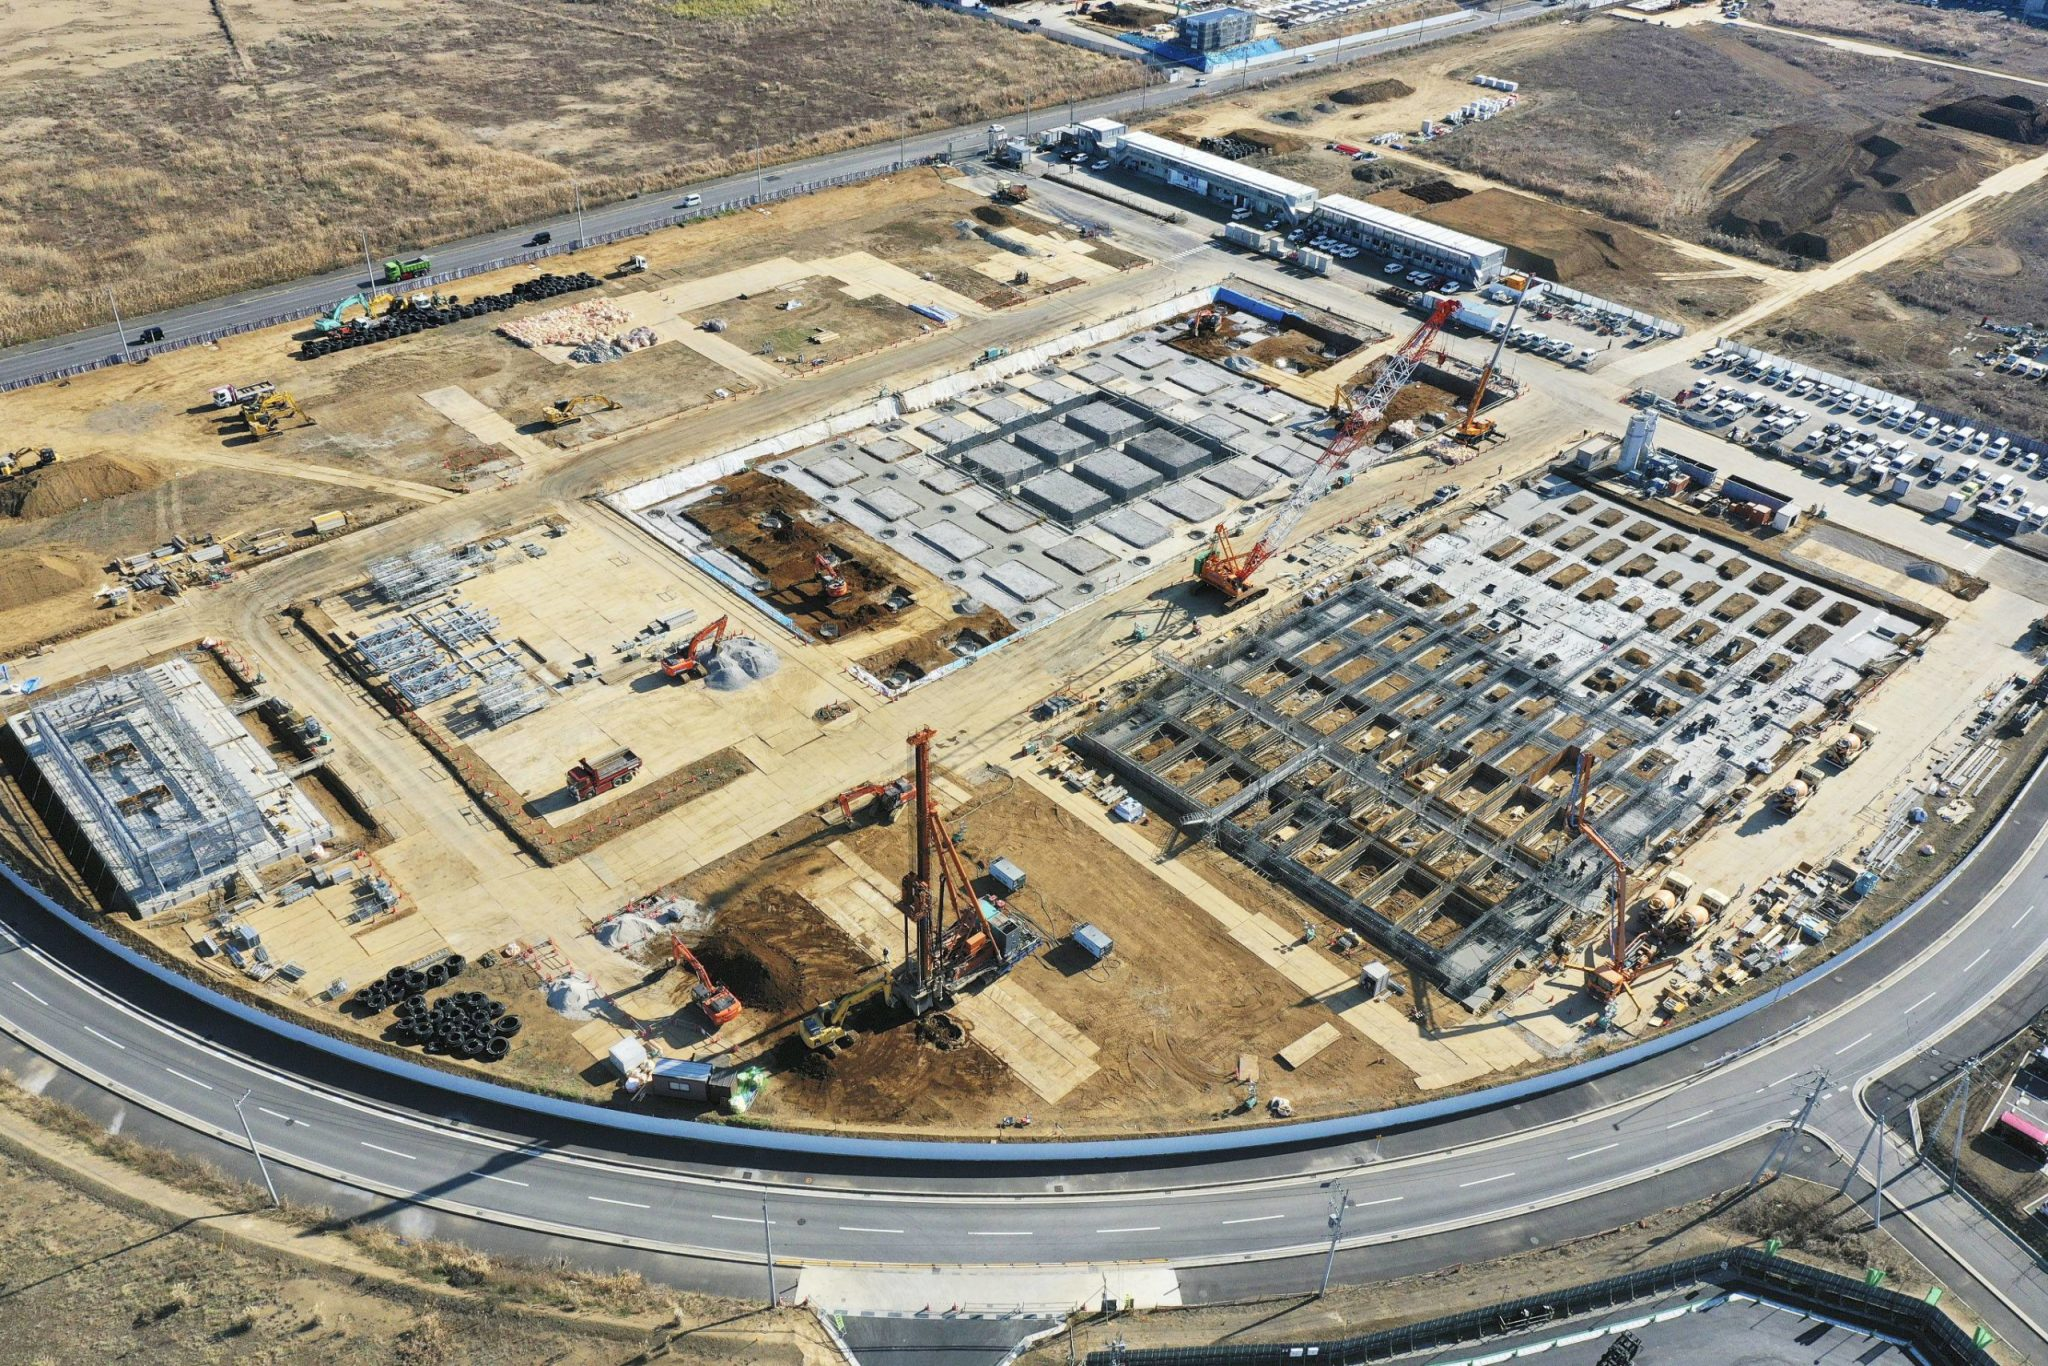 Massive project near Tokyo heralds rise of hyperscale data centers